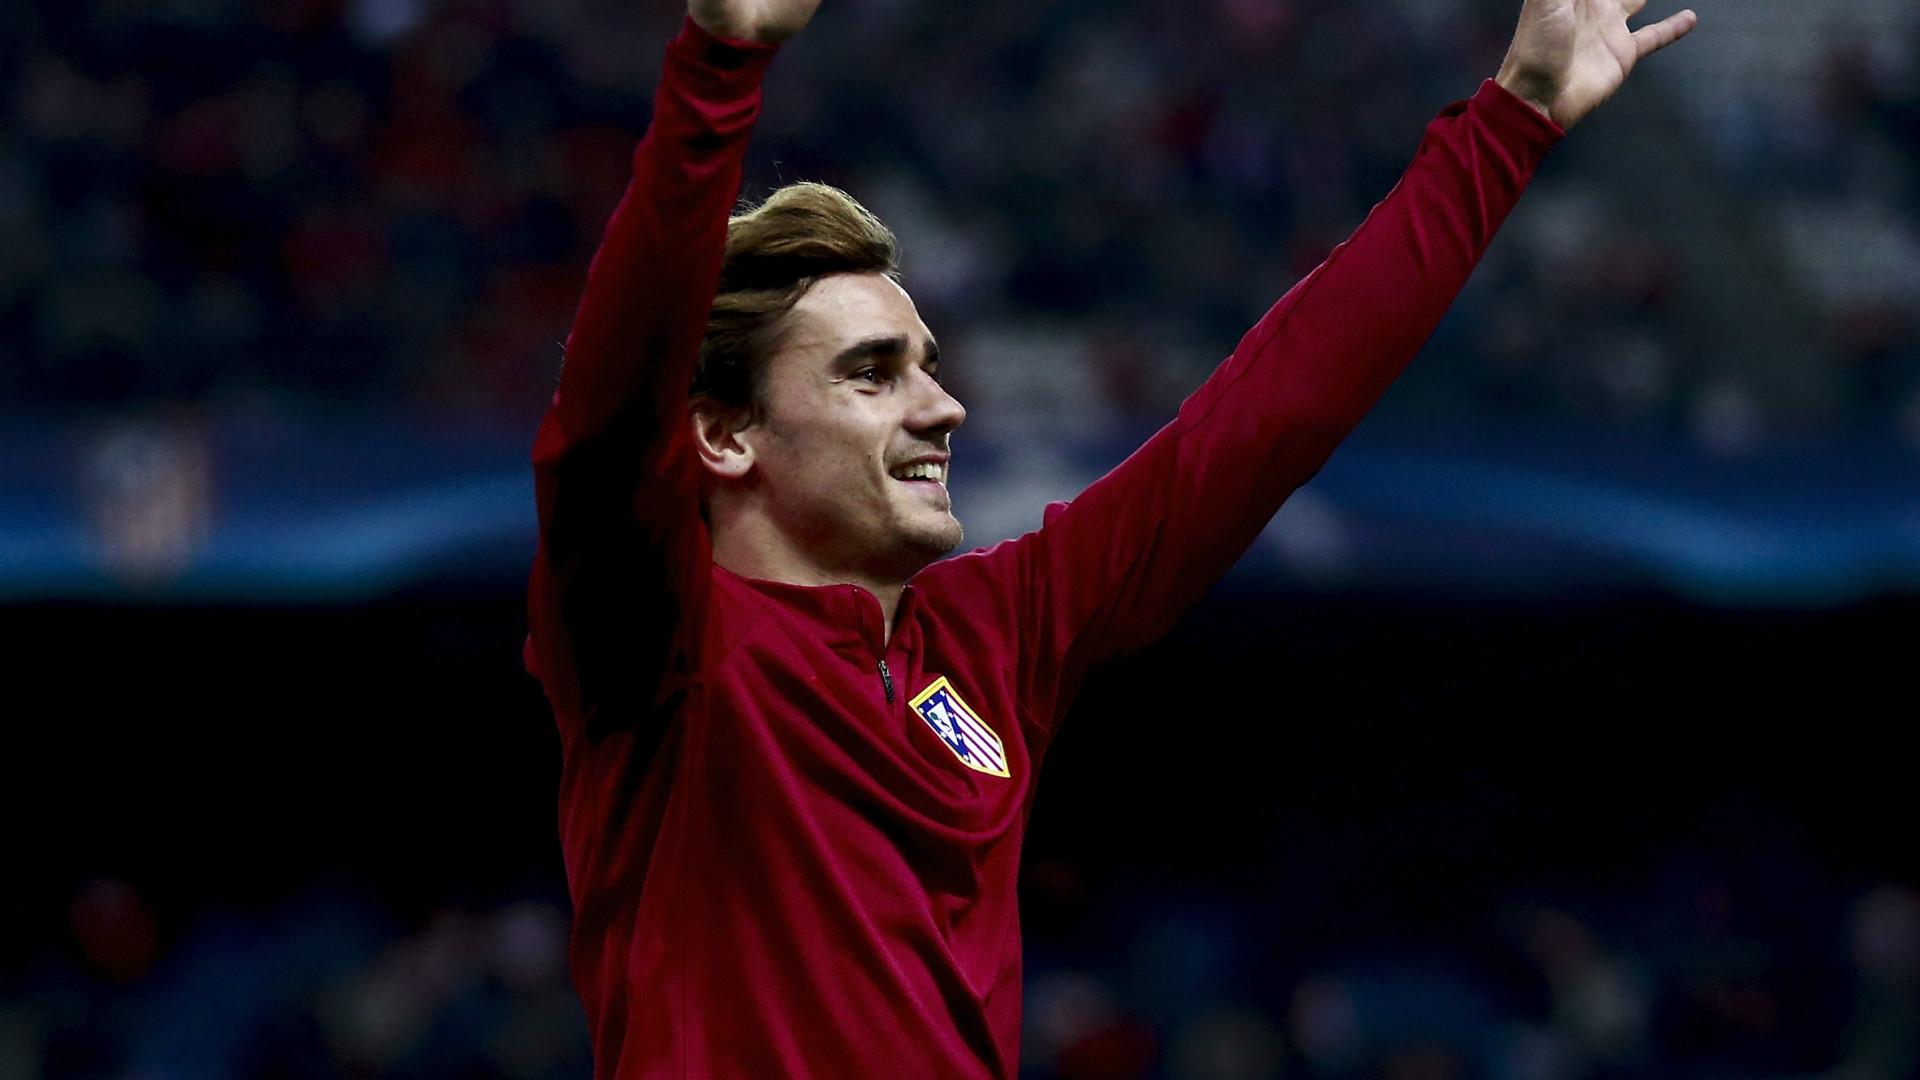 Antoine Griezmann profile The Atletico Madrid star's rise to Man Utd transfer target